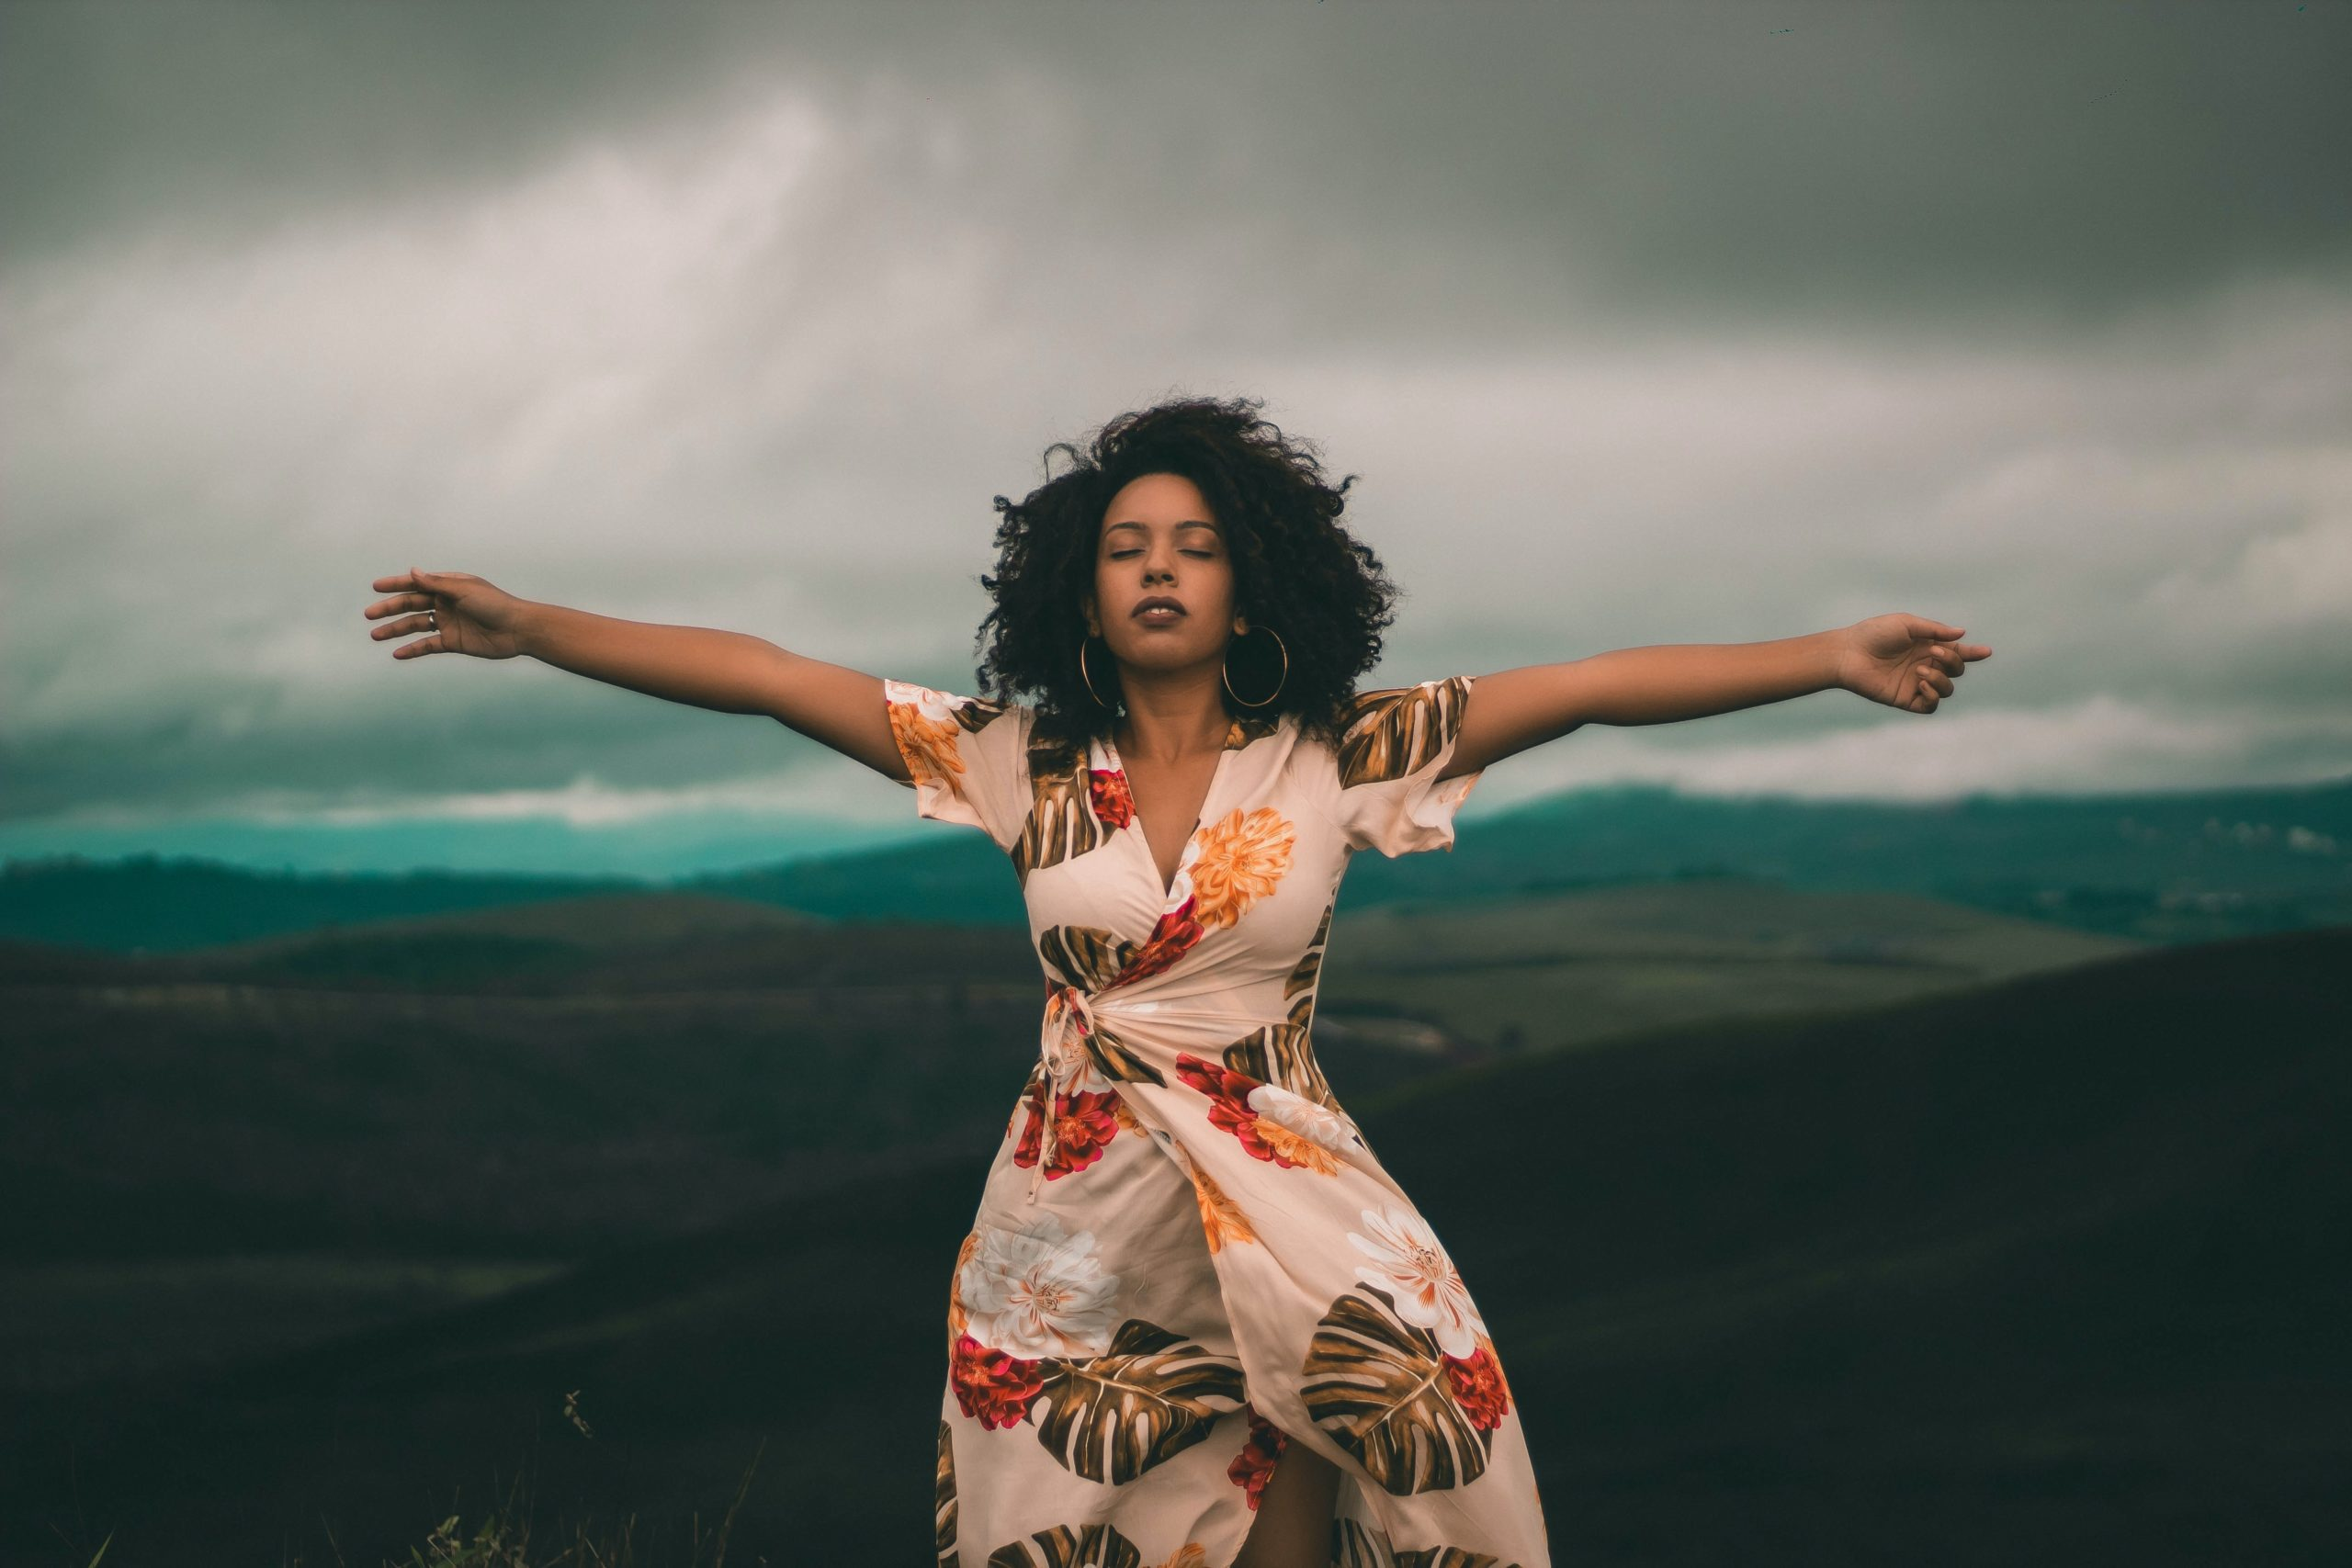 A black woman with glorious hair, arms spread in freedom